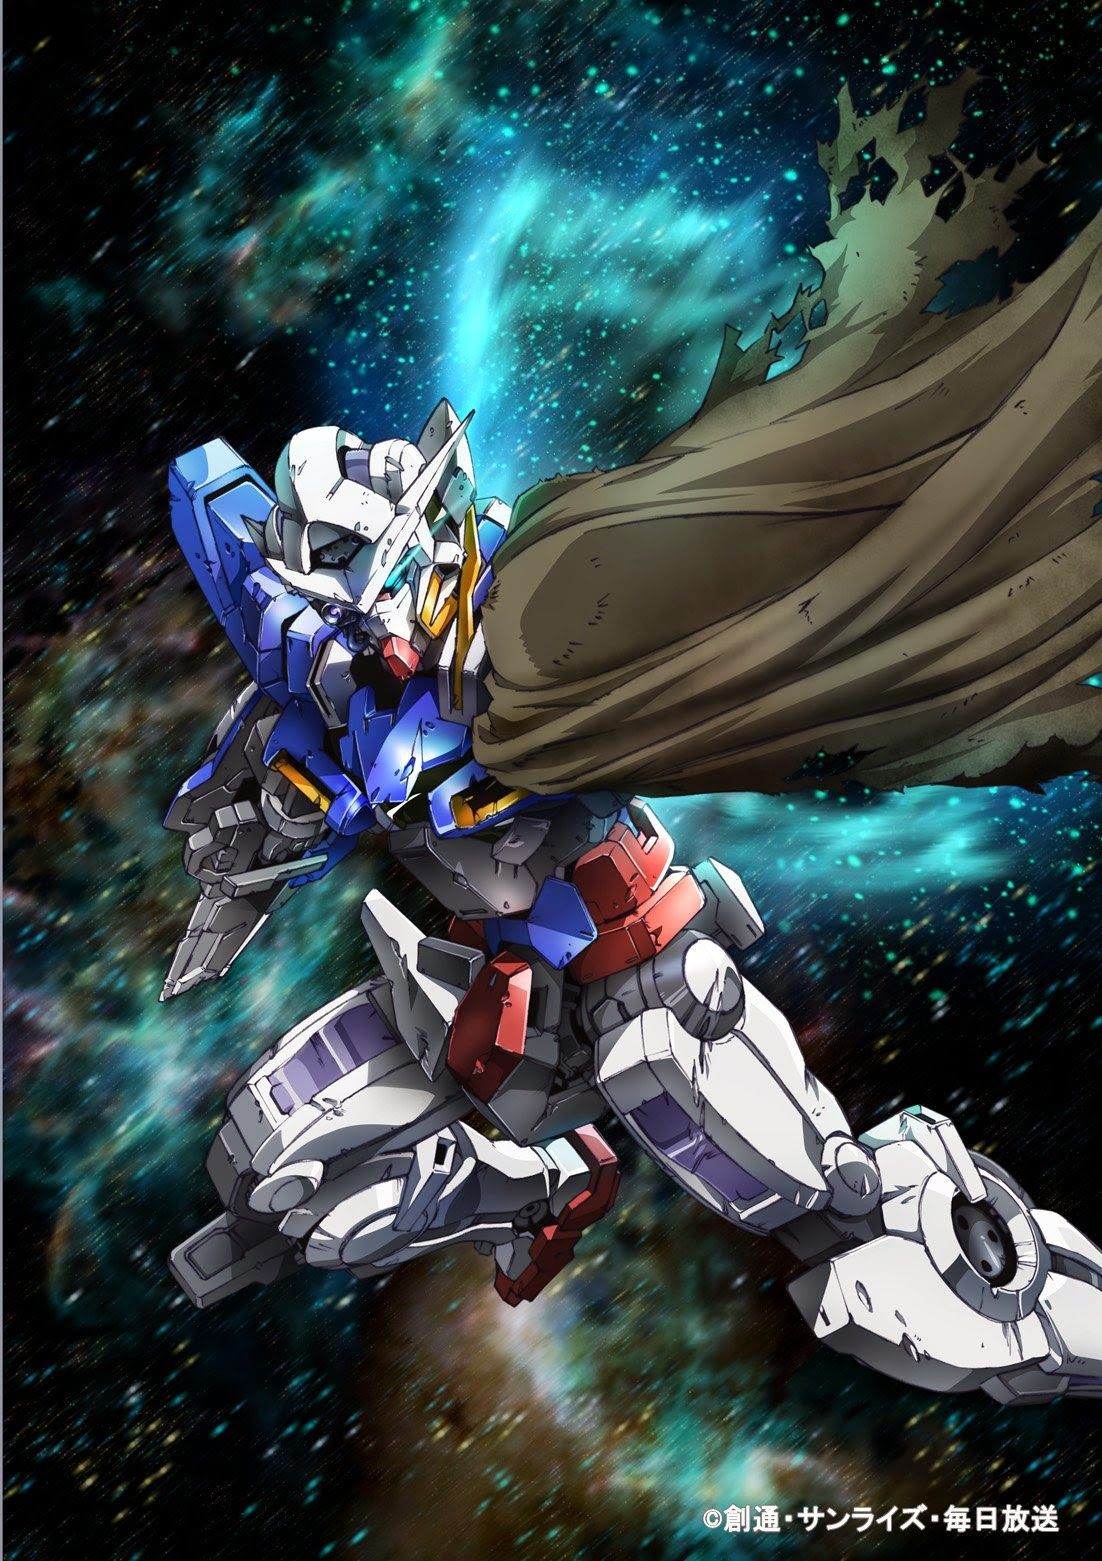 Gundam Exia Repair Wallpaper Poster Image Jpg 1 102 1 561ピクセル